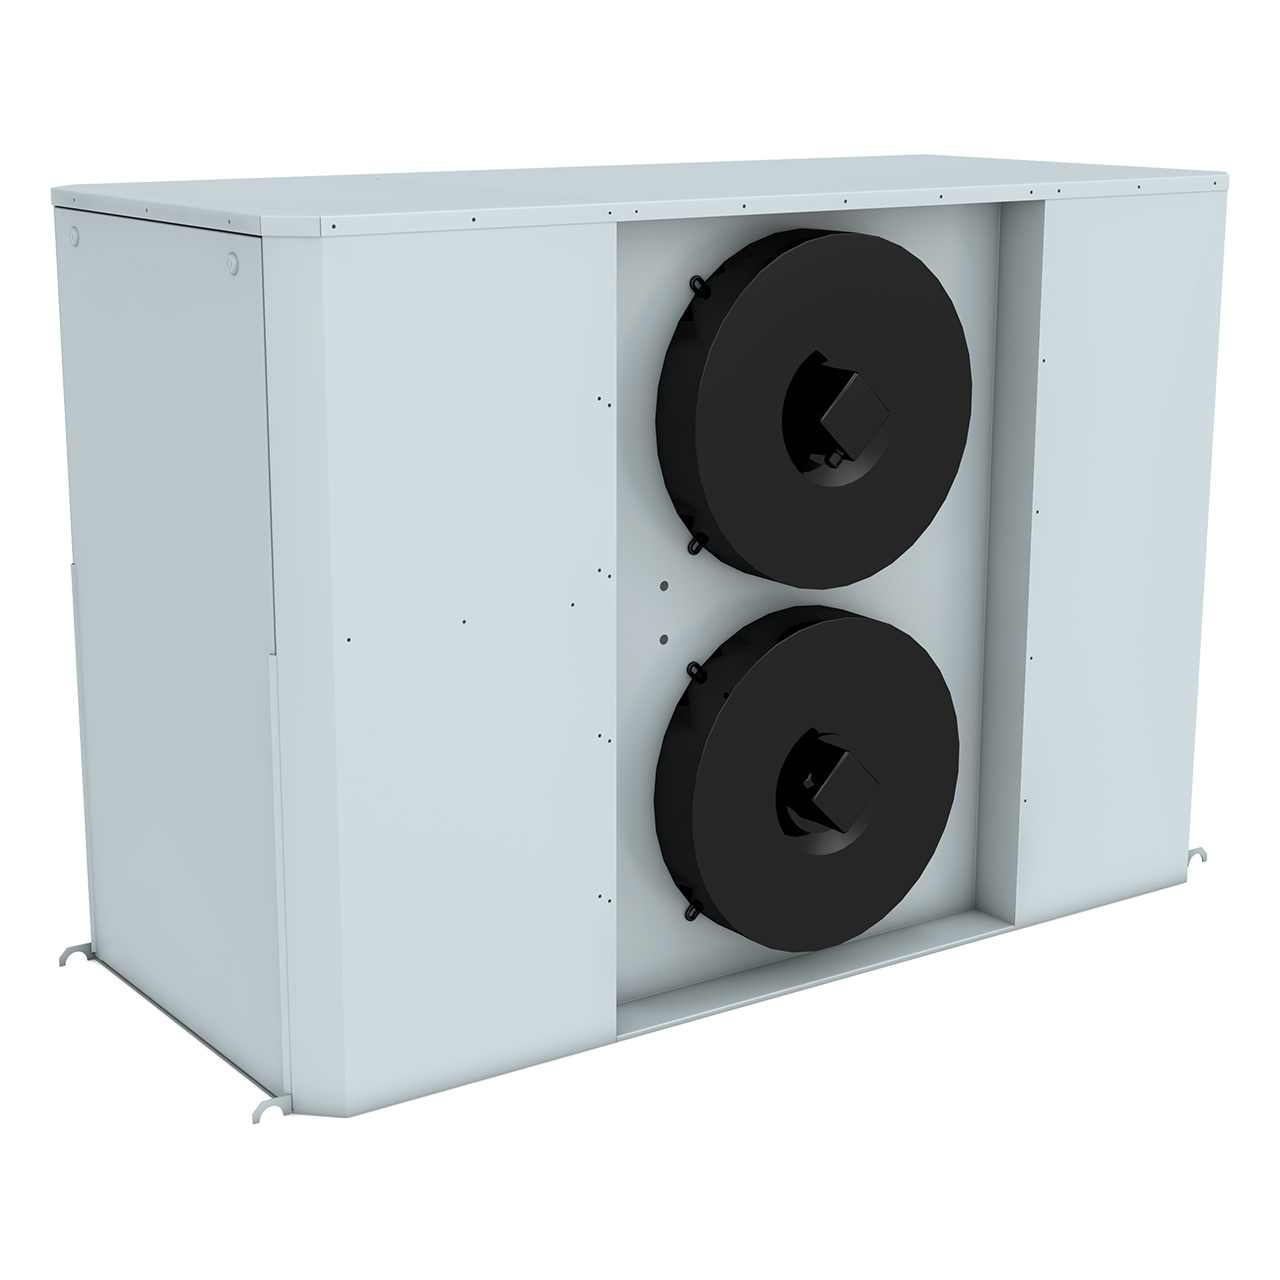 air-cooled-condensing-unit-quietor